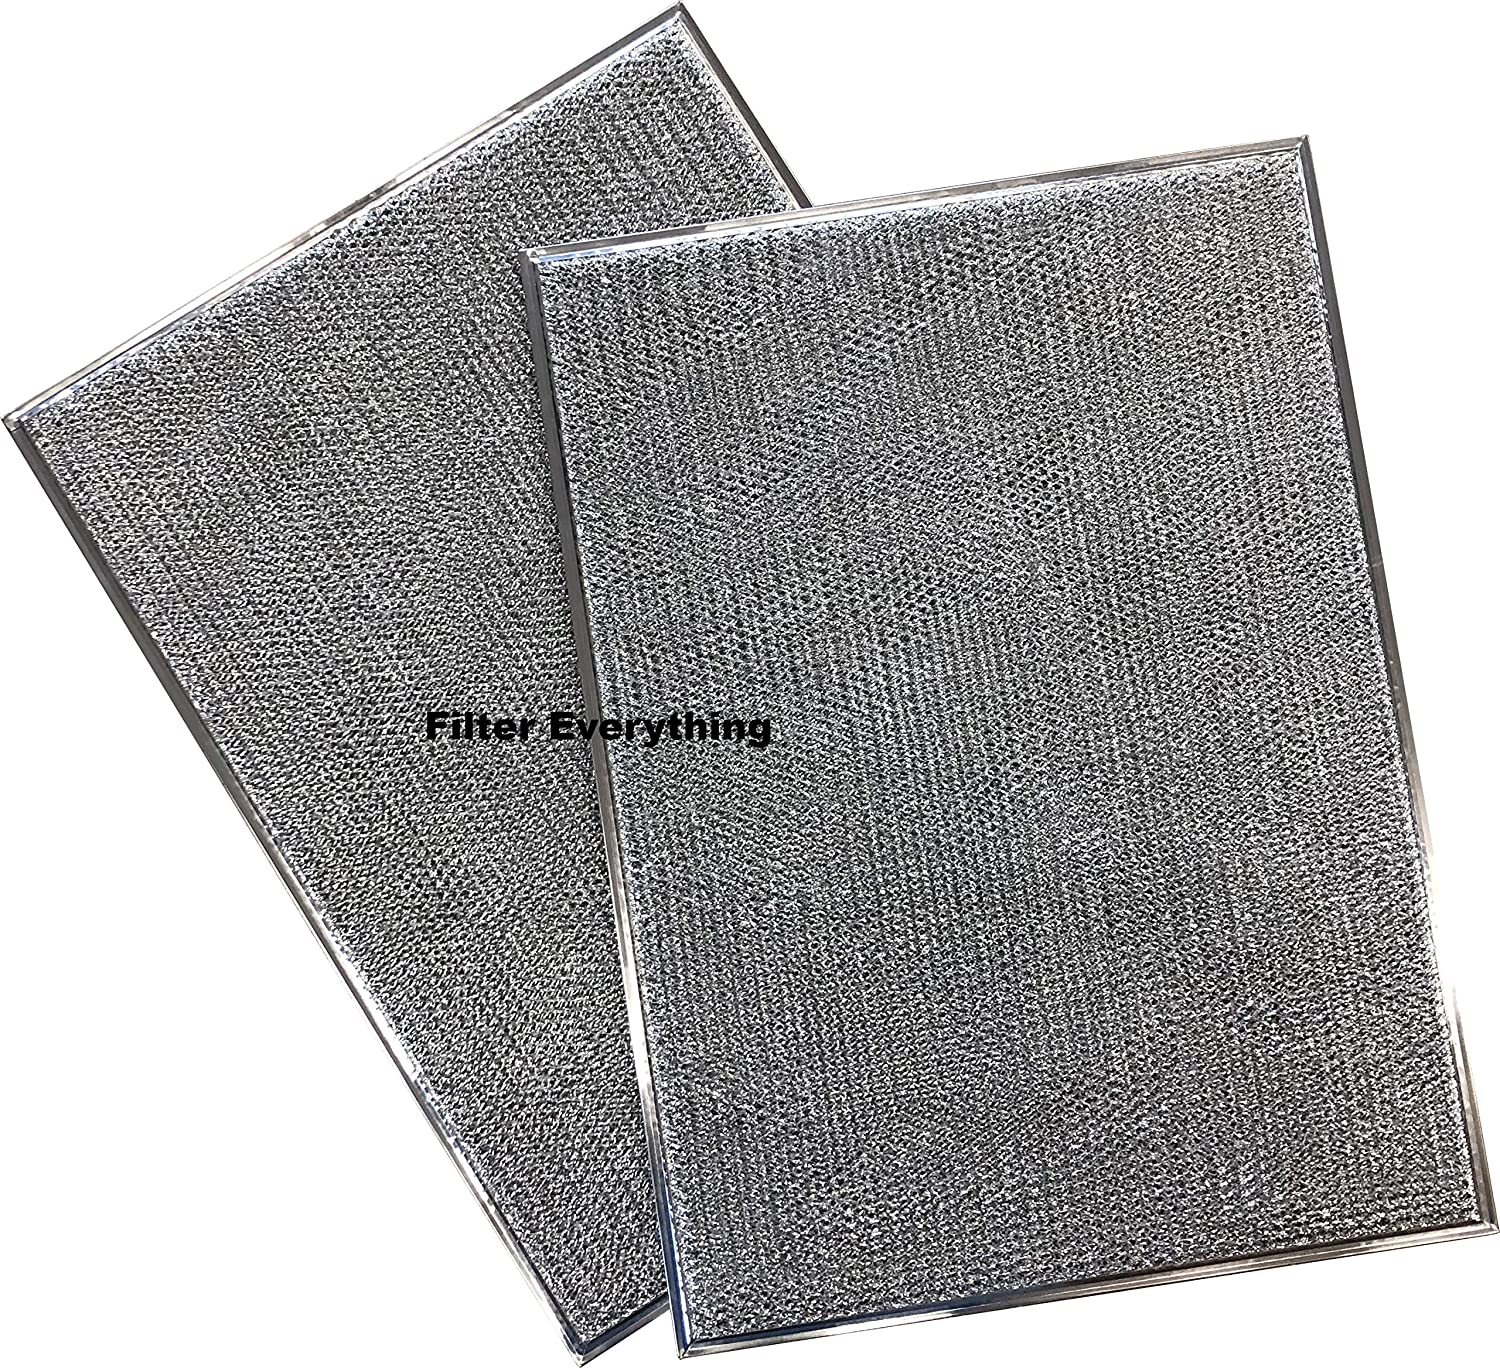 Replacement A Coil Filter Compatible with Nordyne 911329-16-3//4 x 23 x 3//32-2-Pack